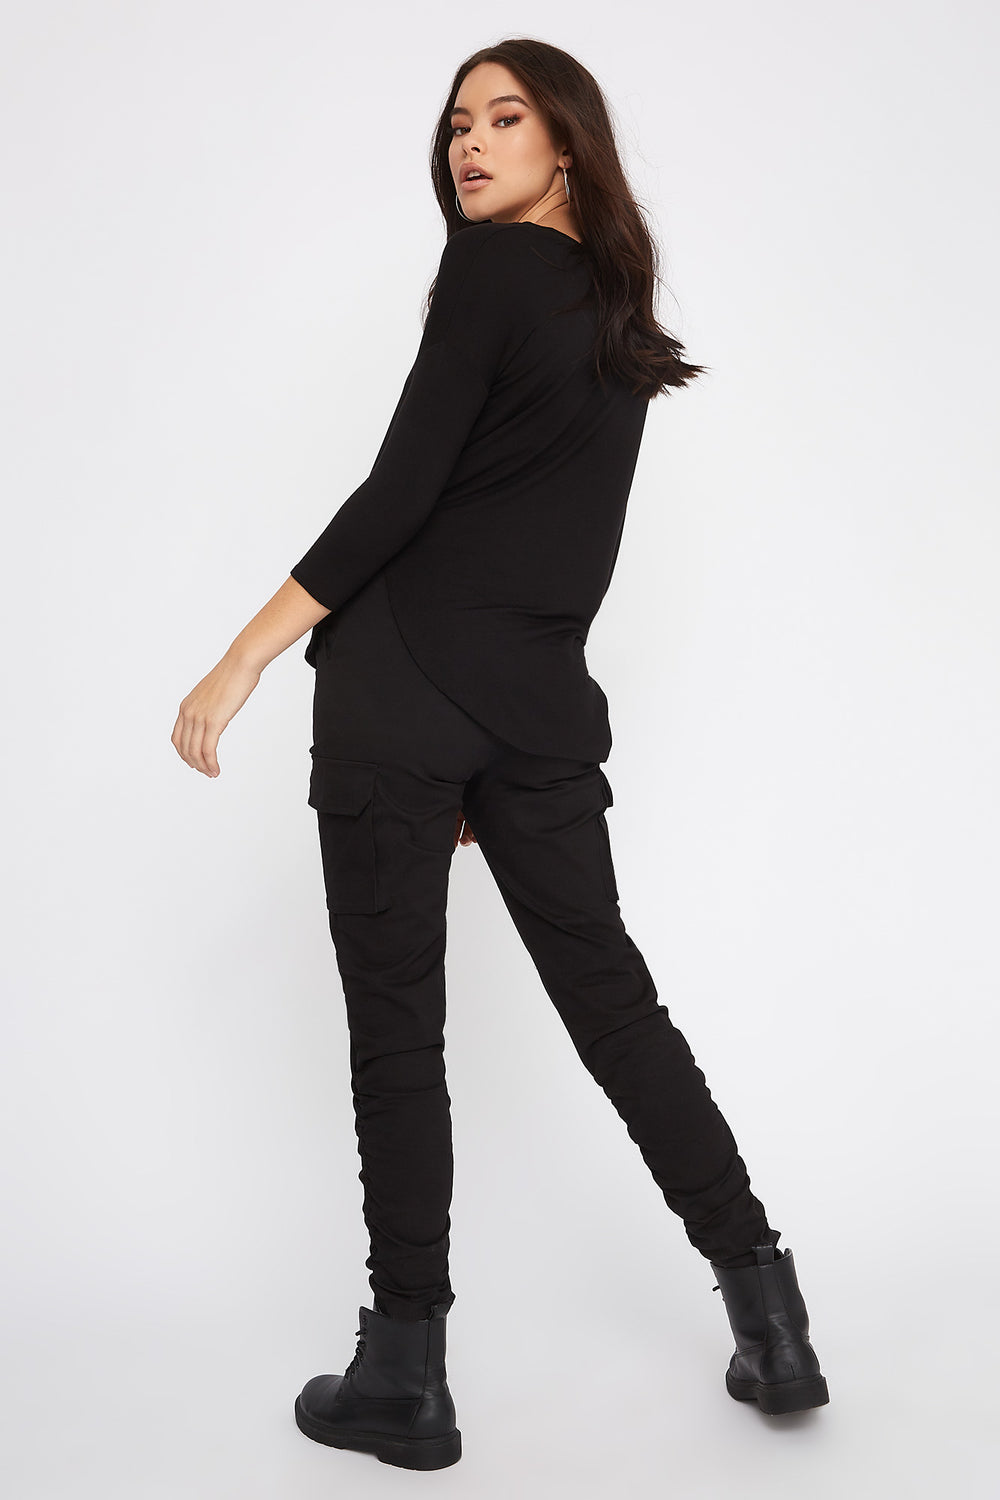 Soft Basic Crew Neck Dolman Long Sleeve Black